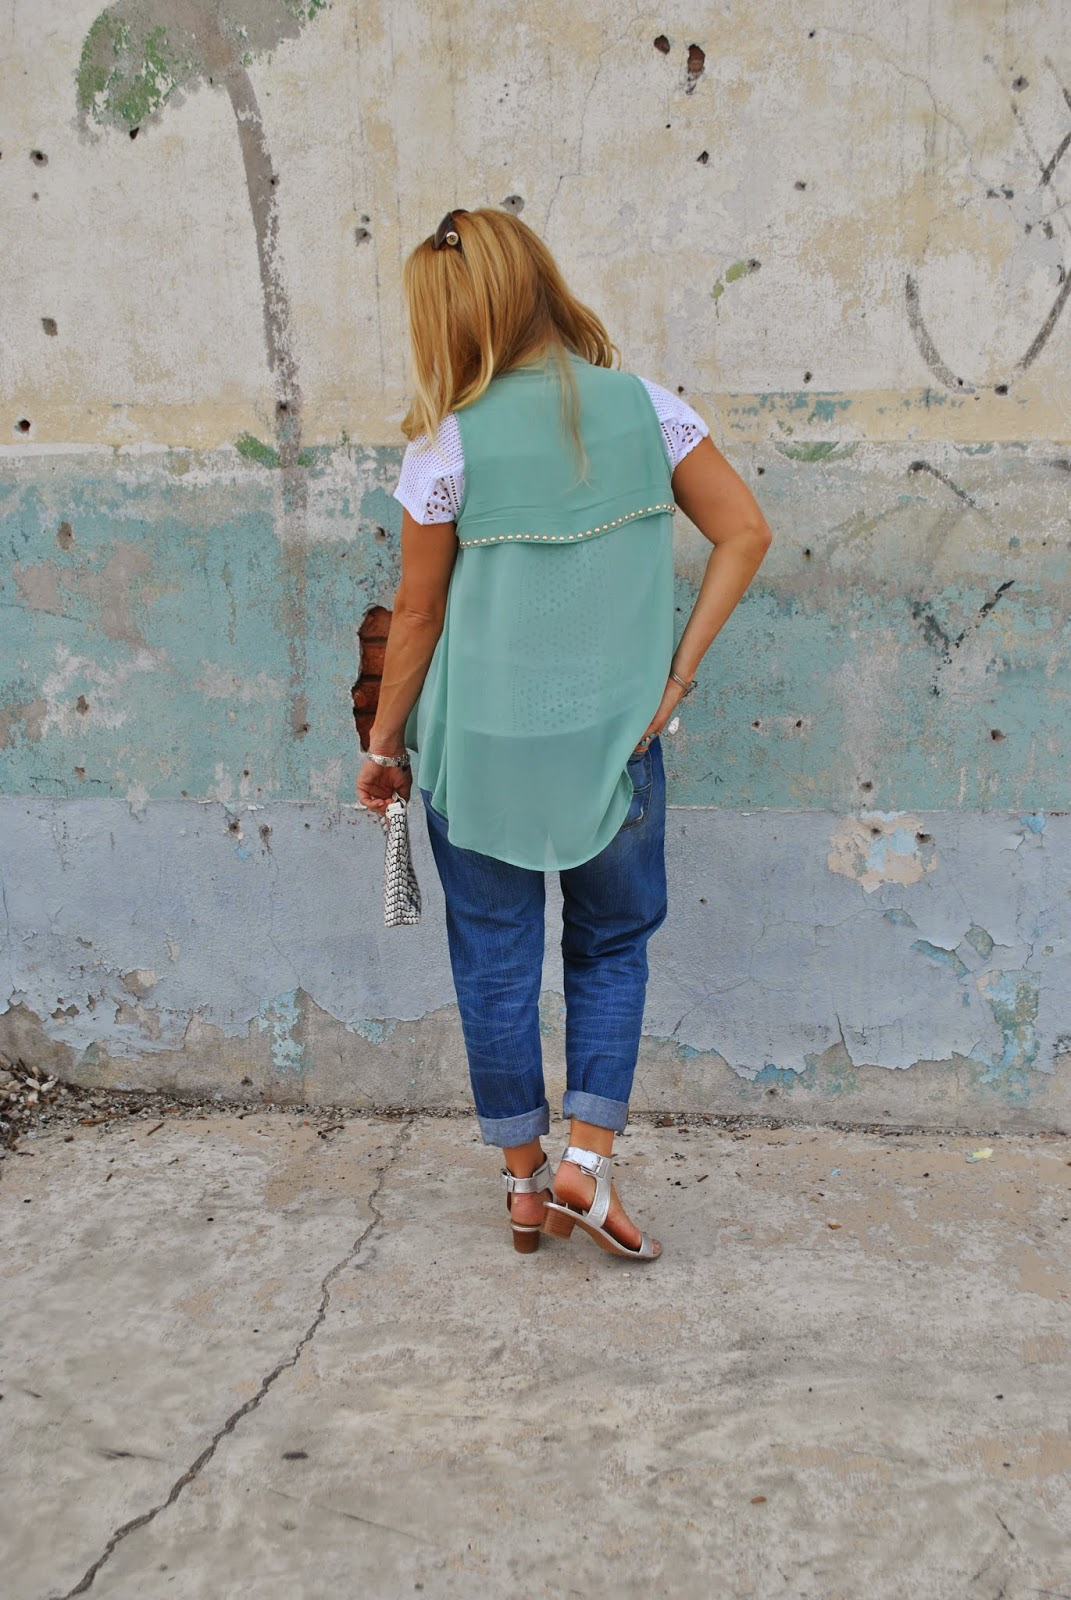 silver sandals and boyfriend jeans